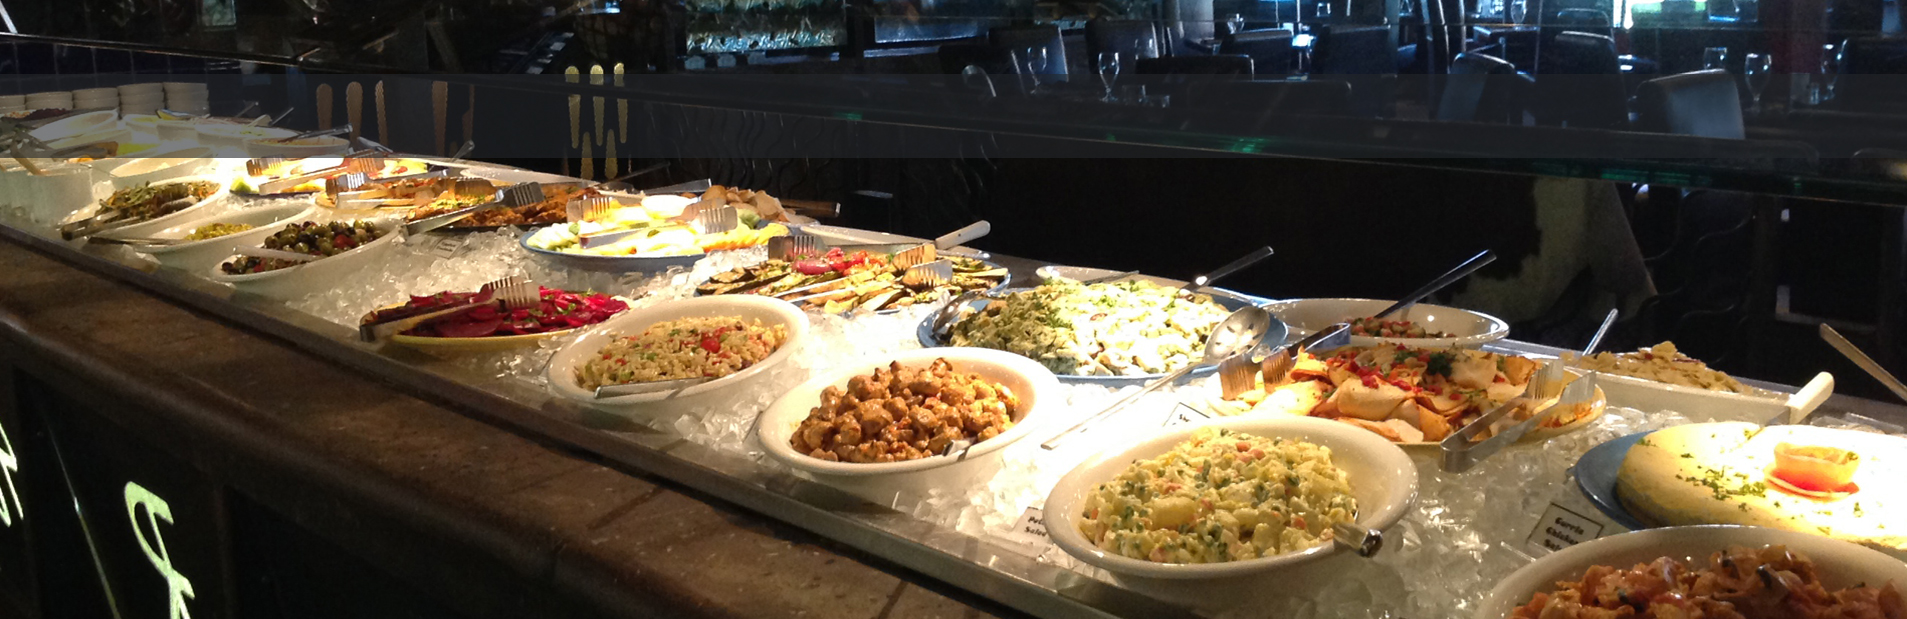 Huge Salad And Appetizer Bar